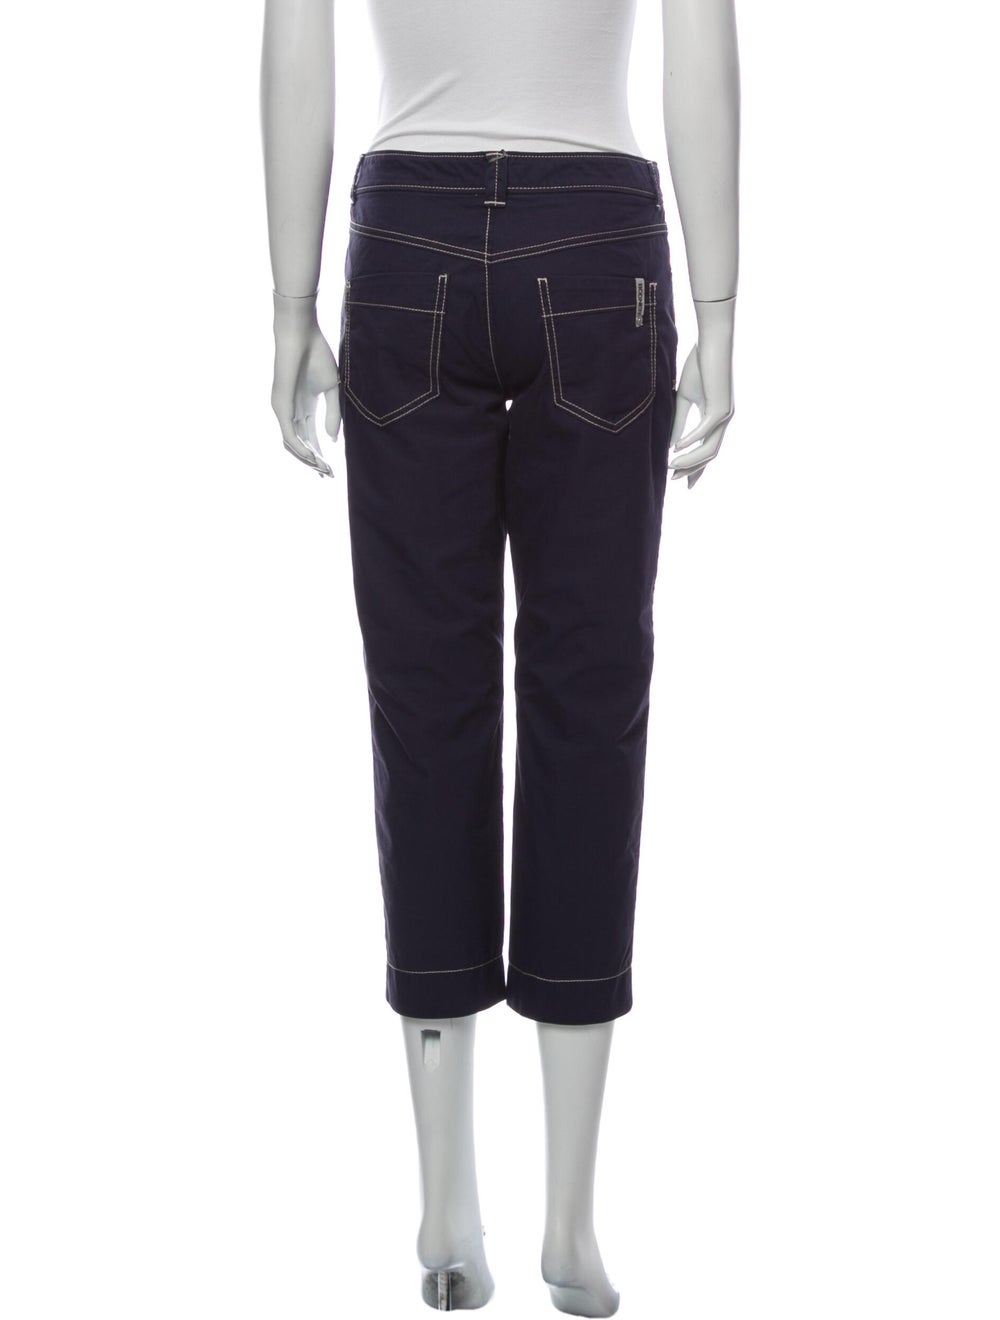 Bogner Straight Leg Pants Blue - image 3